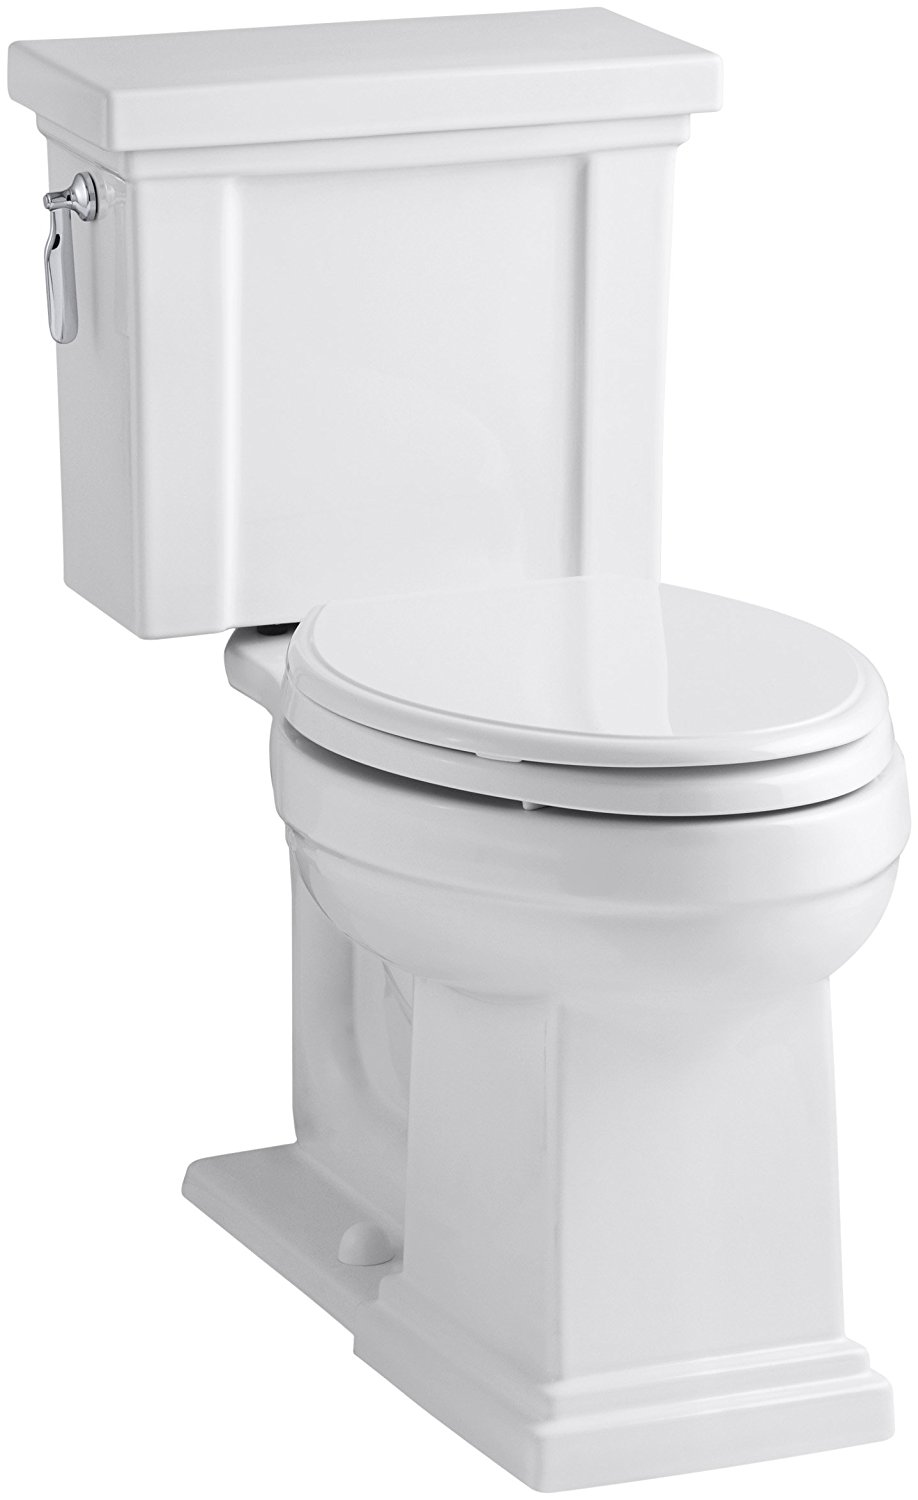 the best kohler toilet 2017 march review and top picks